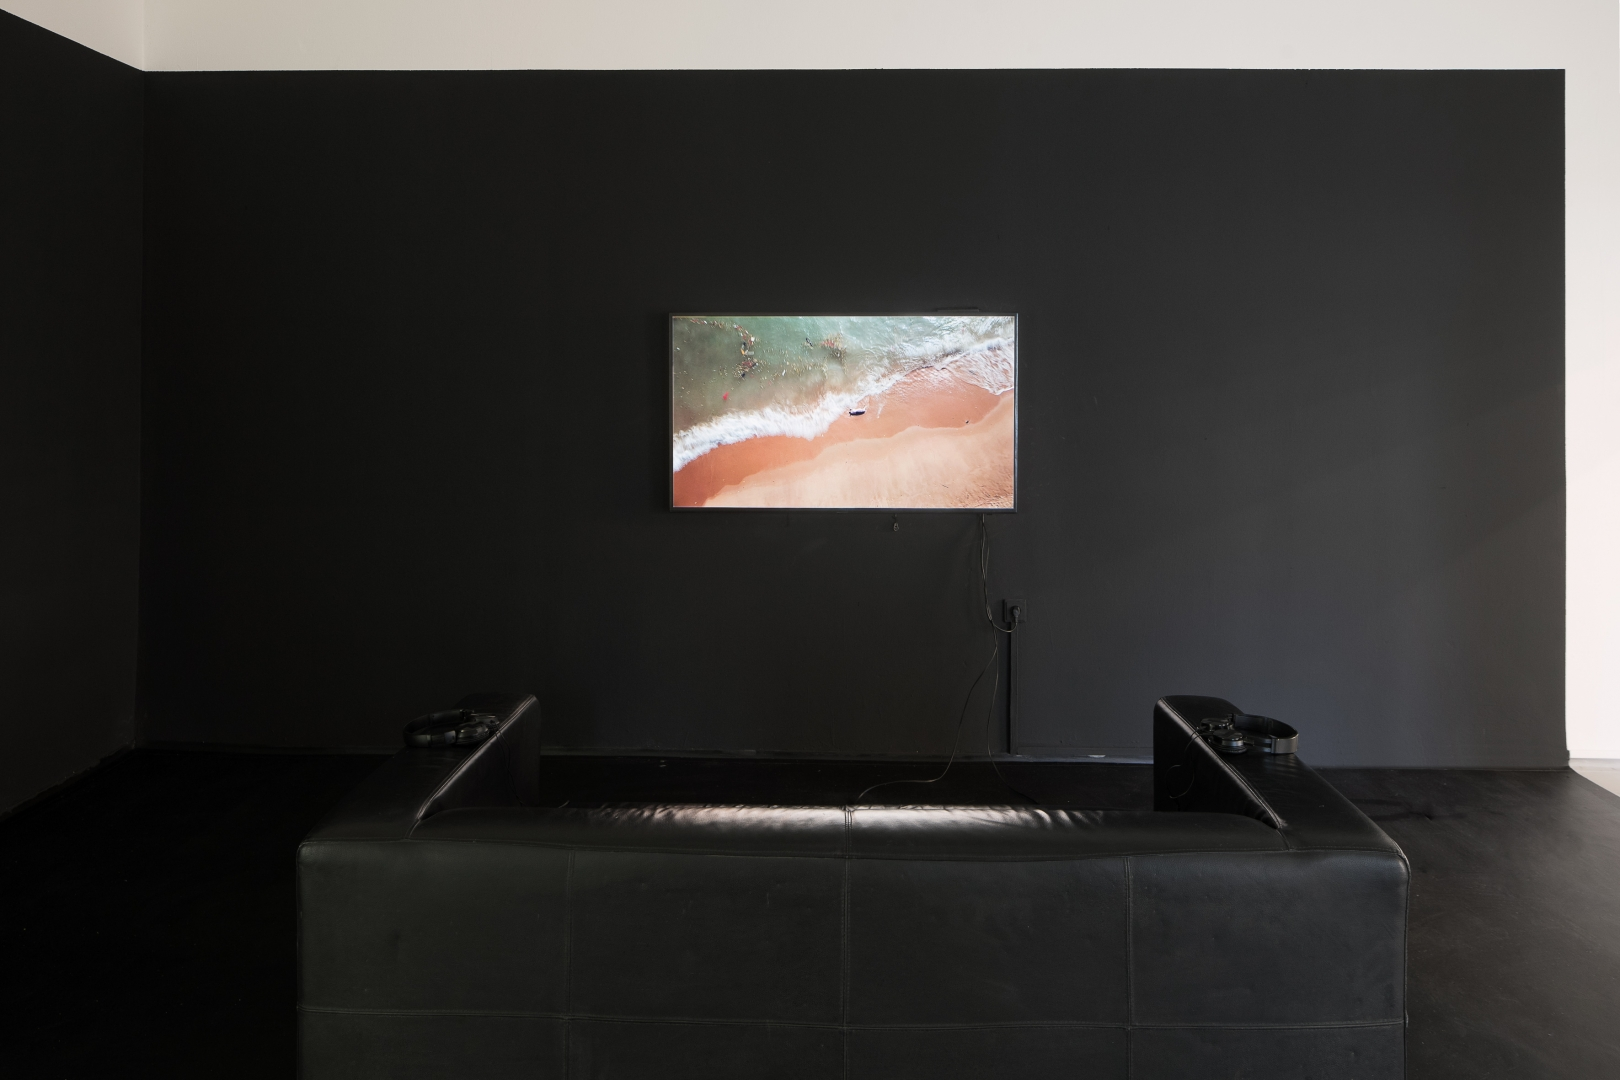 Jan Martinec, installation view / pohled do instalace